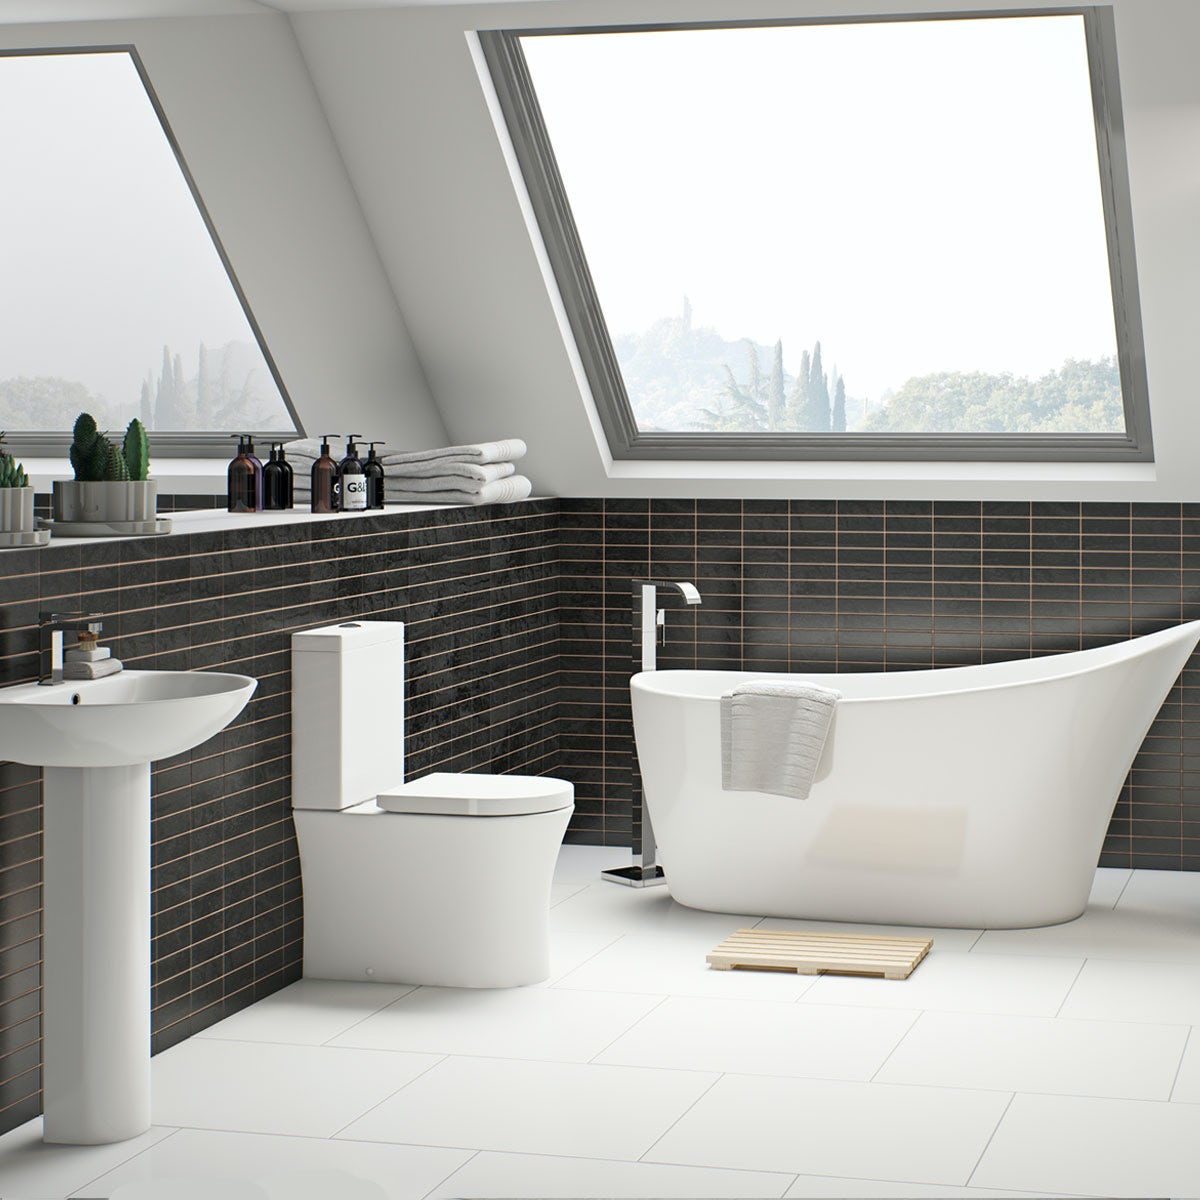 Mode Hardy bathroom suite with freestanding bath and taps  VictoriaPlumcom